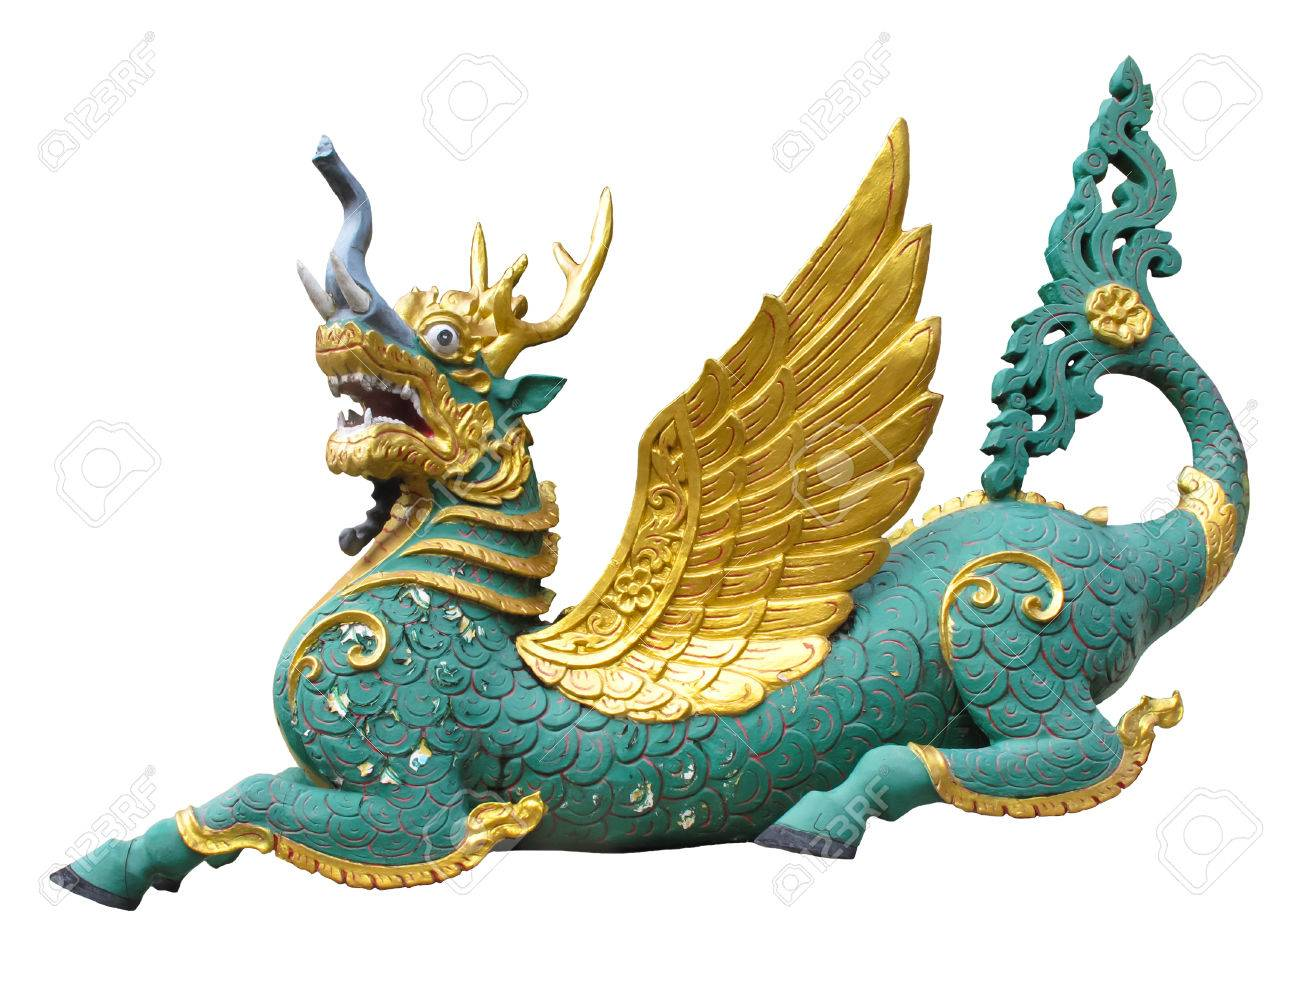 A colorful funny dragon the animals in Thai literature or fantasy story, part of body from each animals  elephant, deer, horse,fish, bird Stock Photo - 23307592